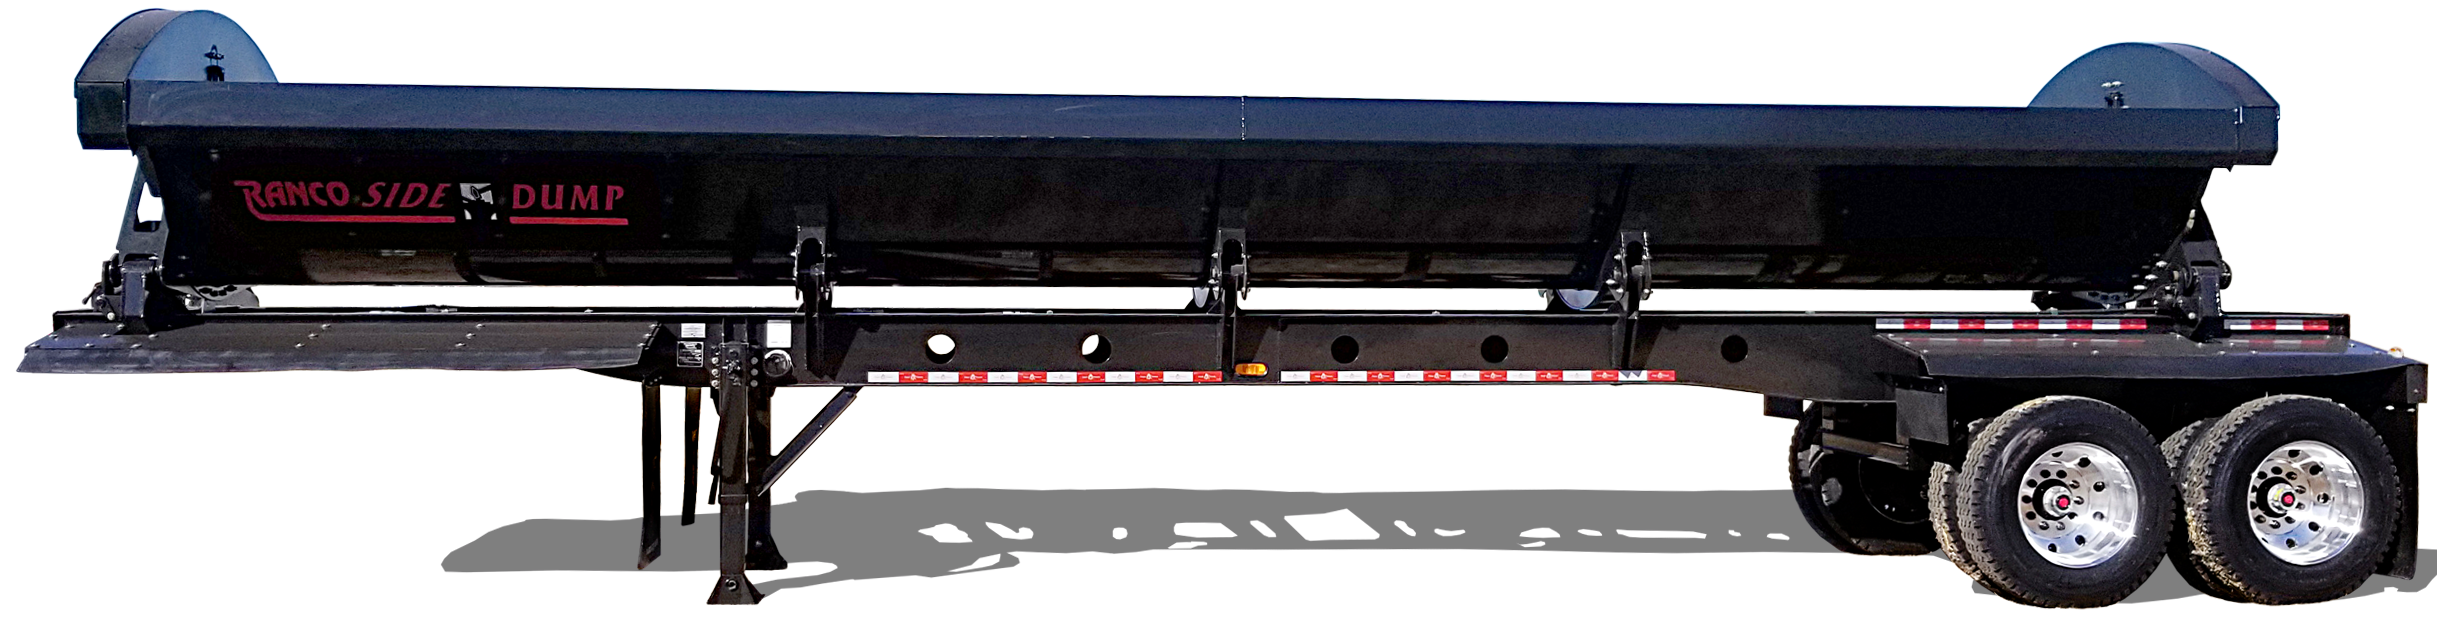 Ranco SD22-42-2 2-Axle Side Dump